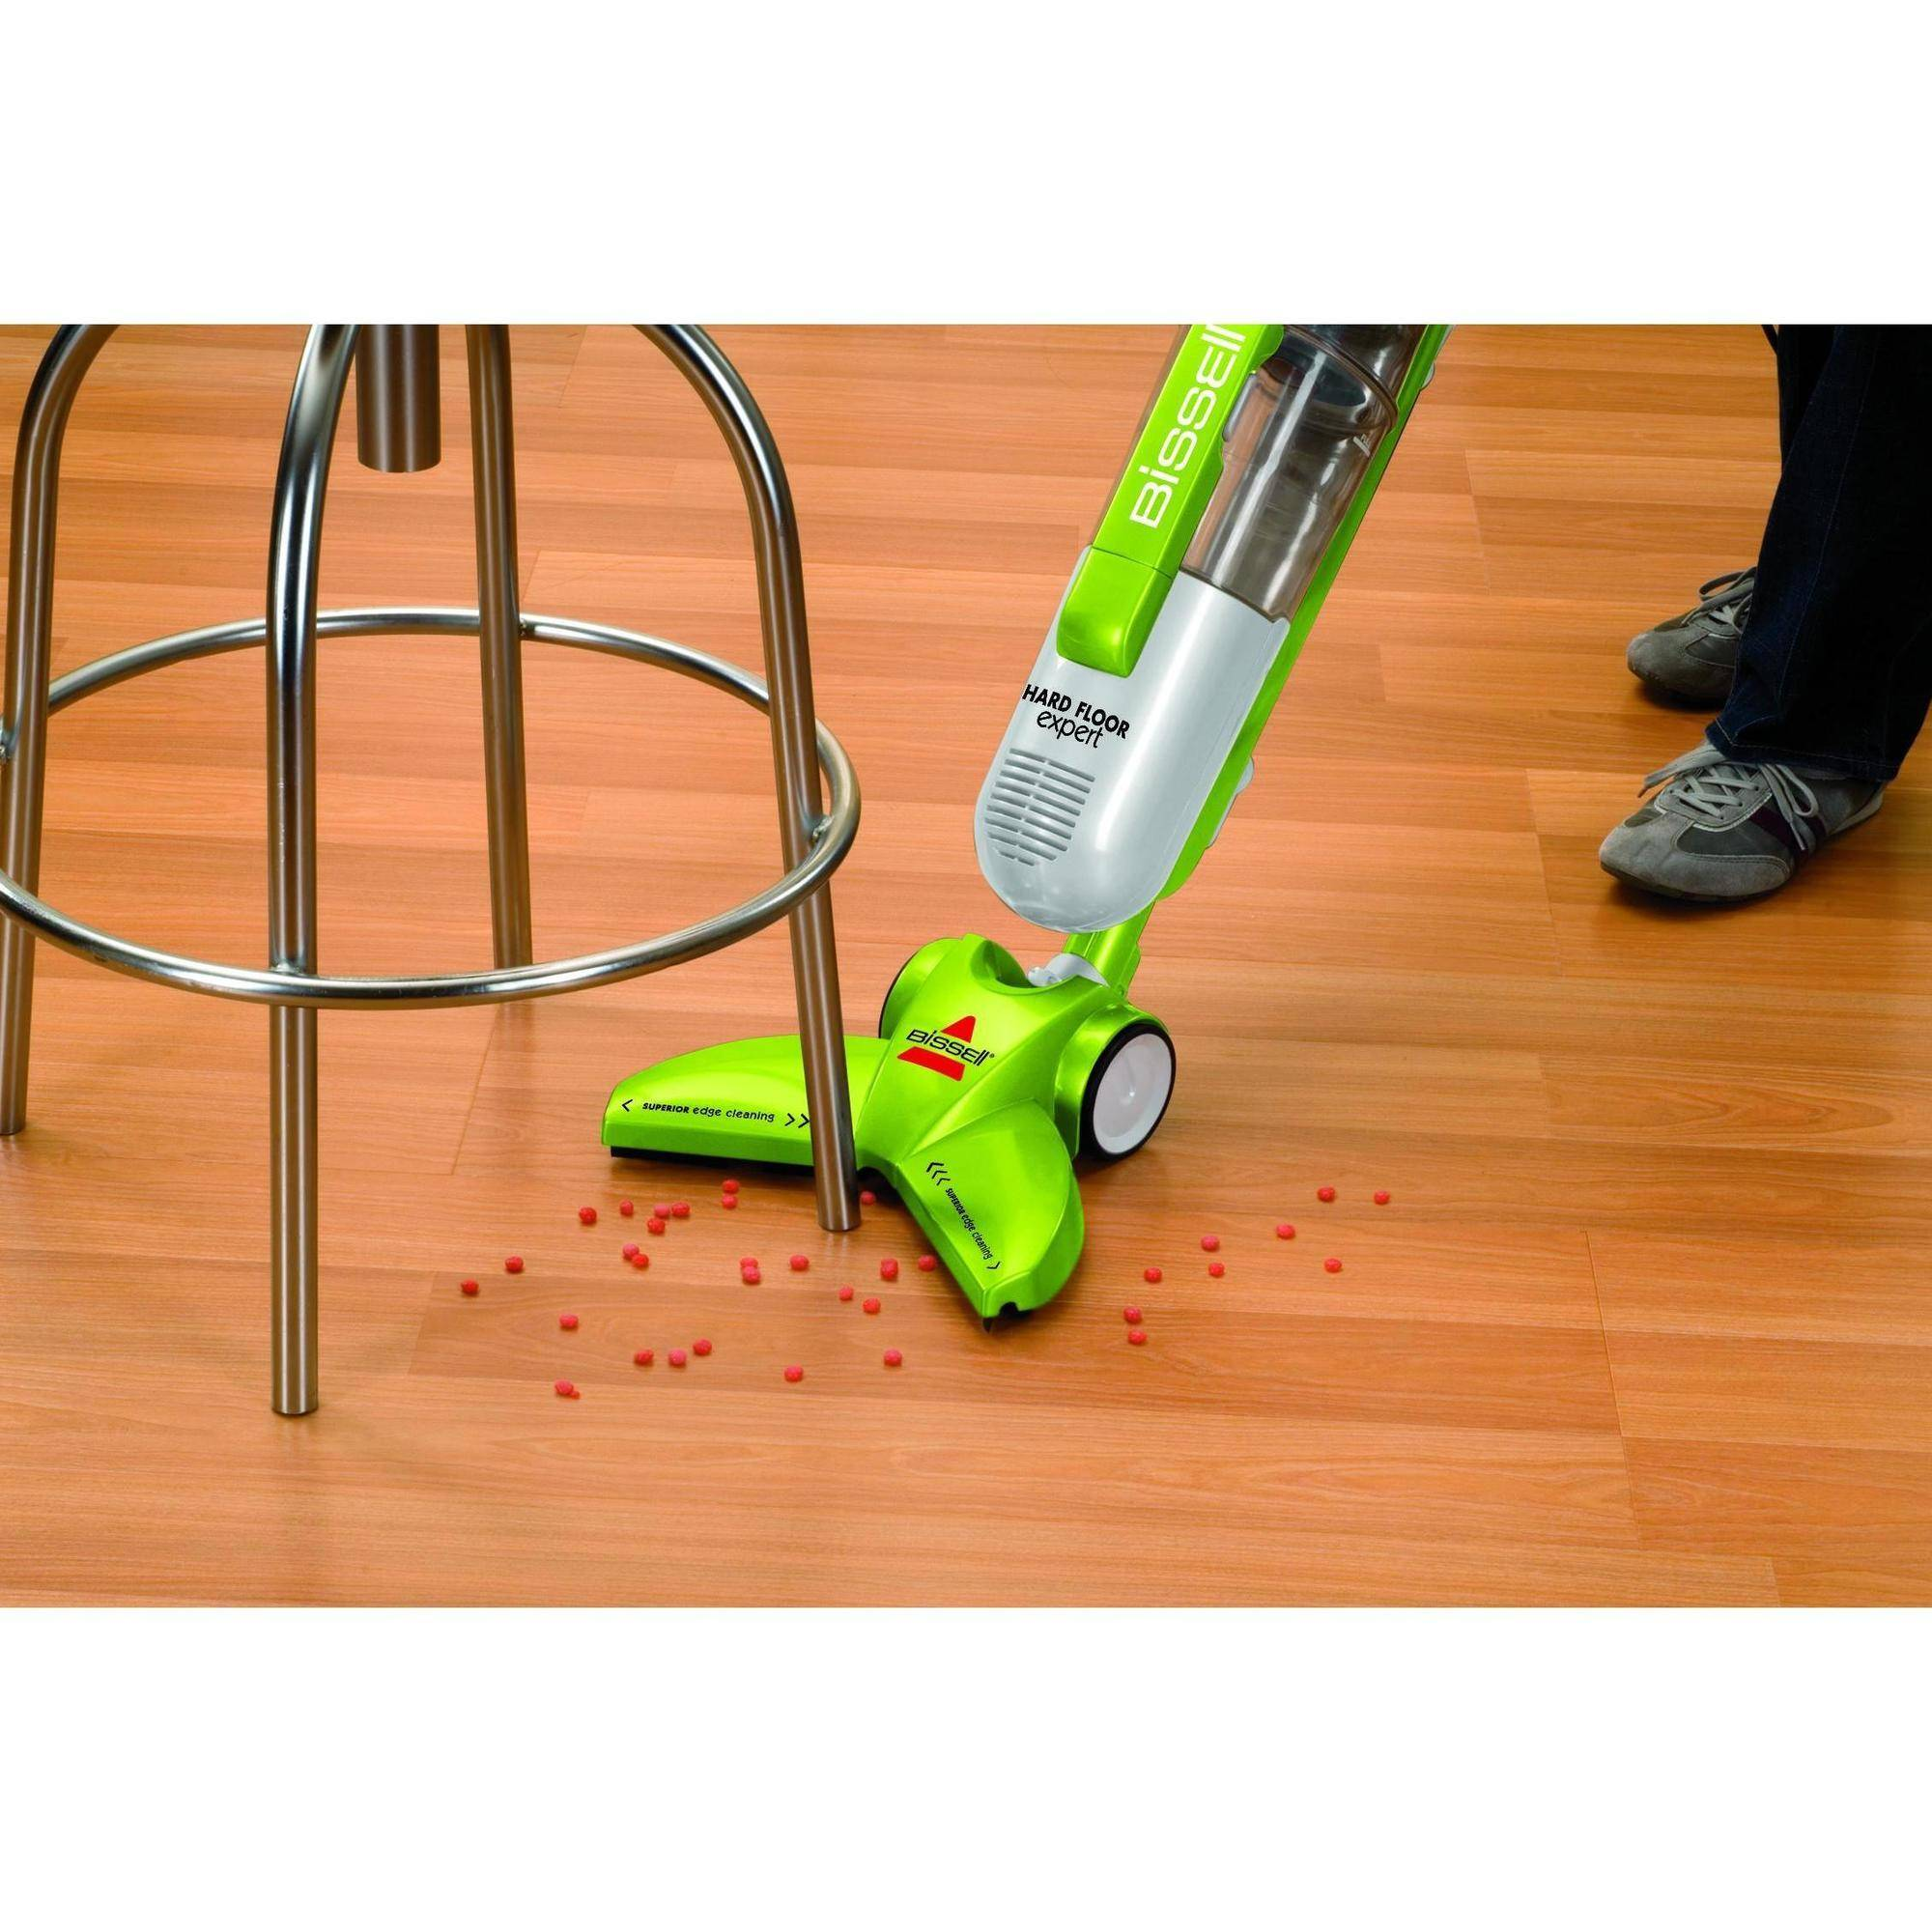 Exceptional Bissell Hard Floor Expert Stick Vacuum, 81L2W Image 5 Of 6